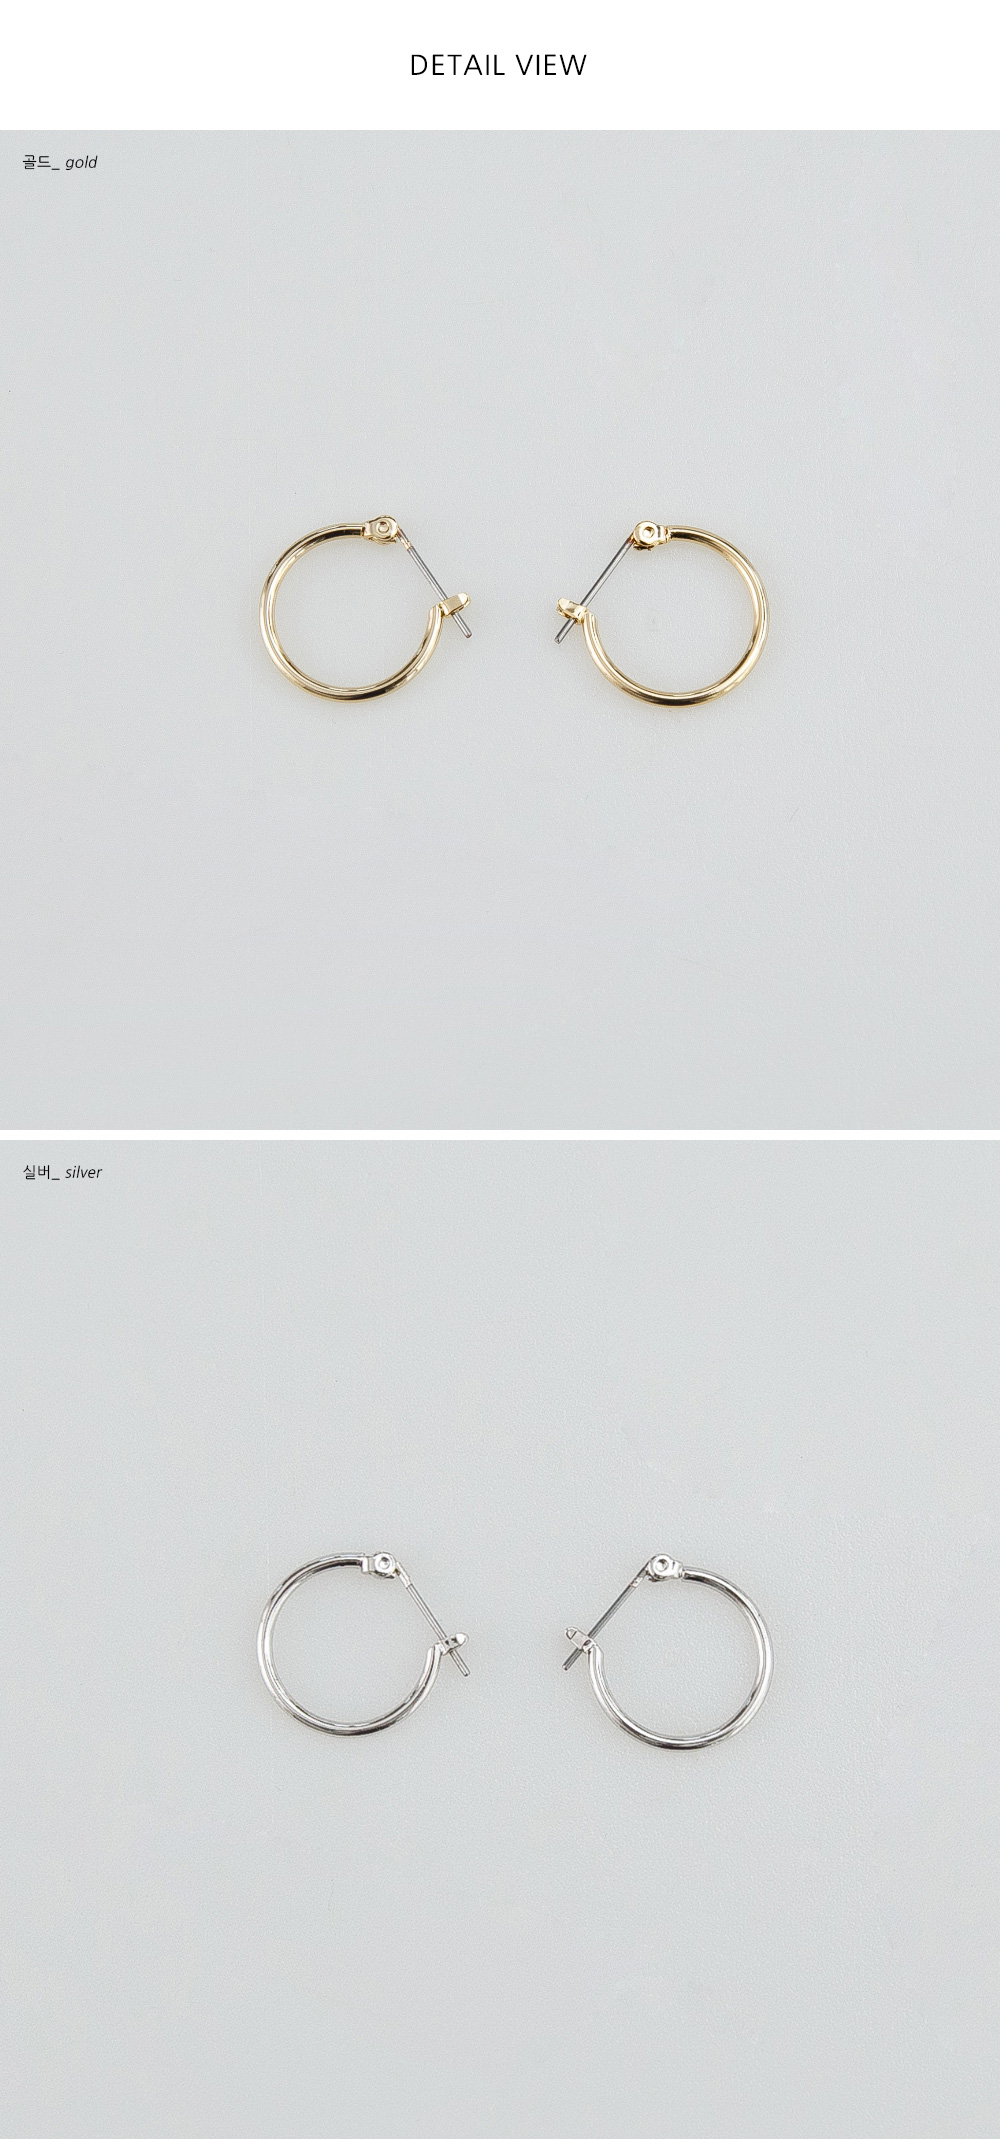 2-Color Daily Ring Earrings